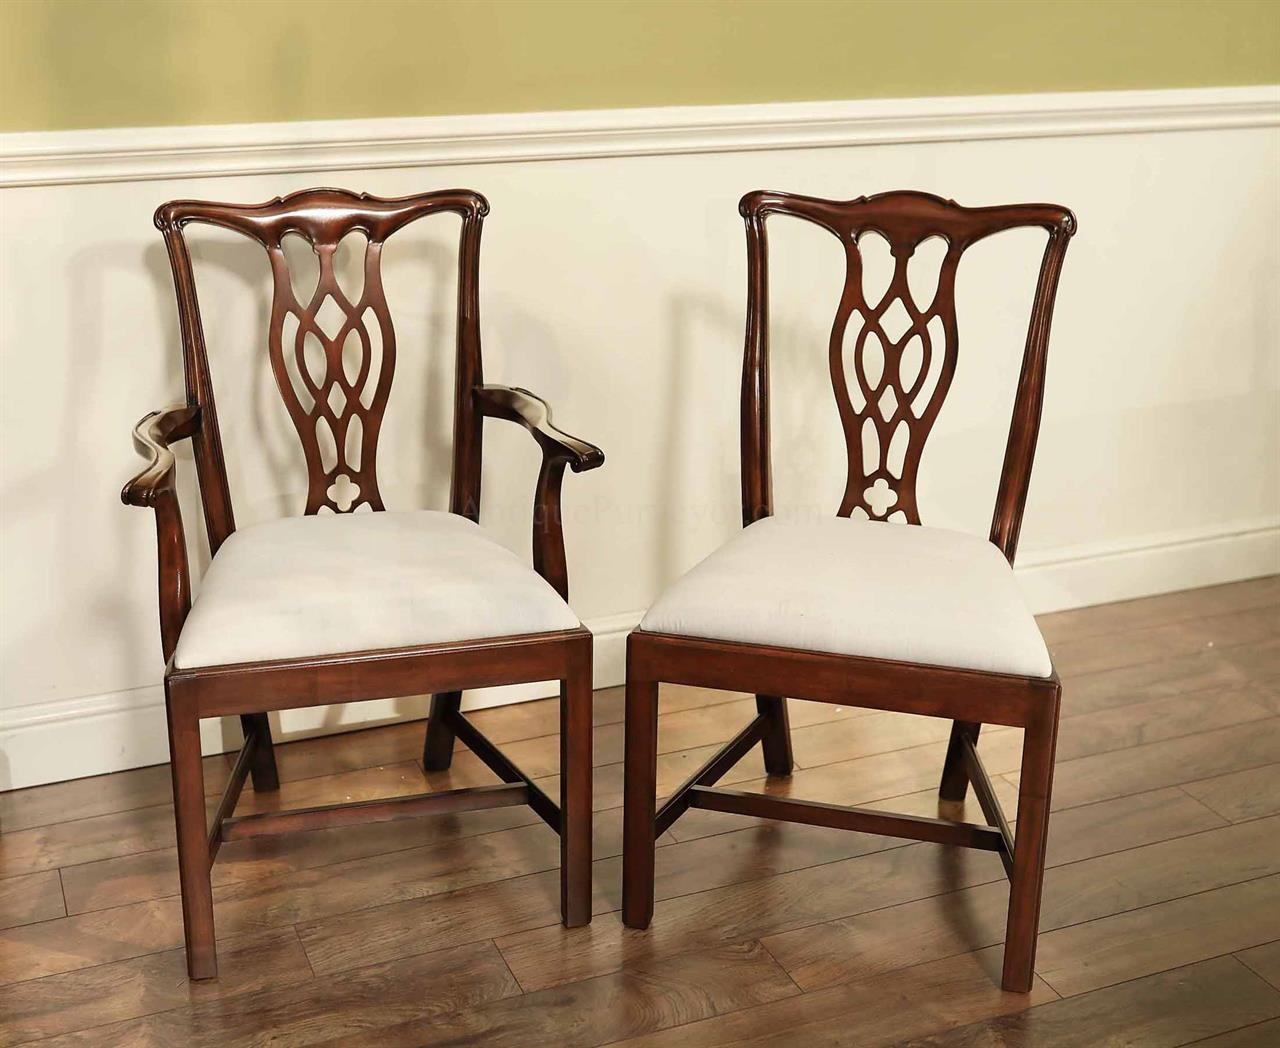 Mahogany Dining Room Chairs, Straight Leg Chippendale Dining Chairs